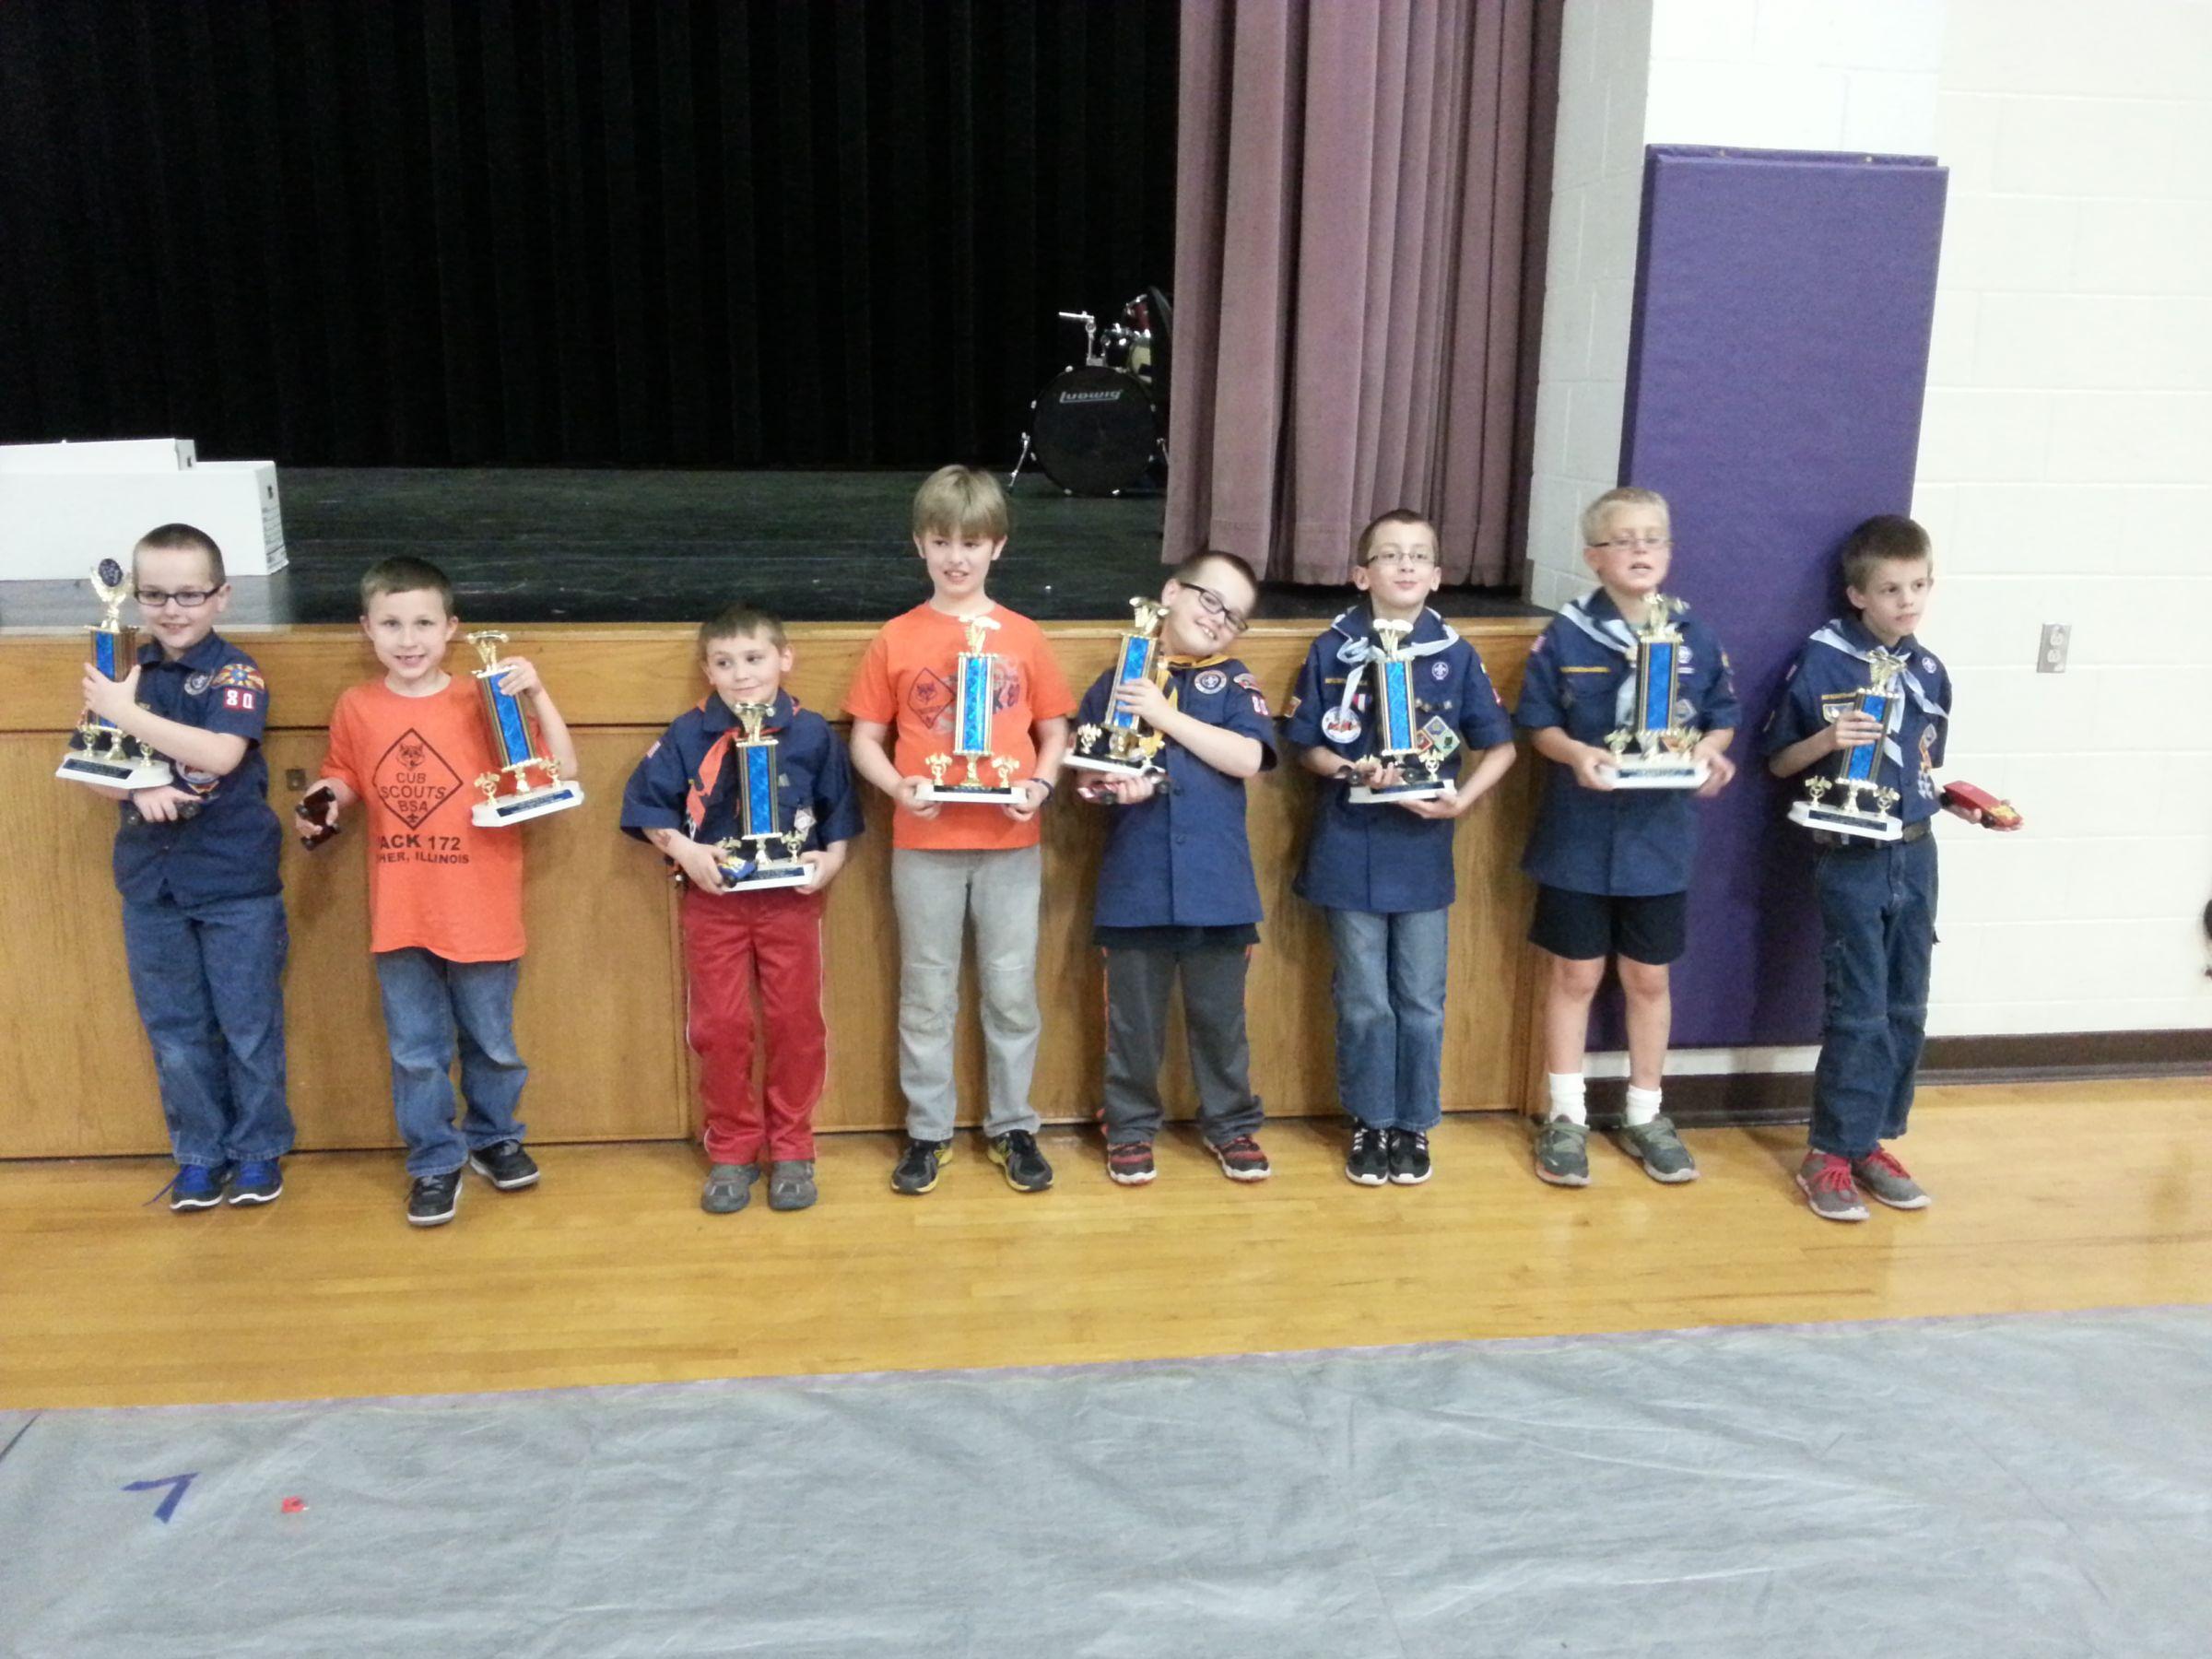 Prairielands Council Pinewood Derby race winners